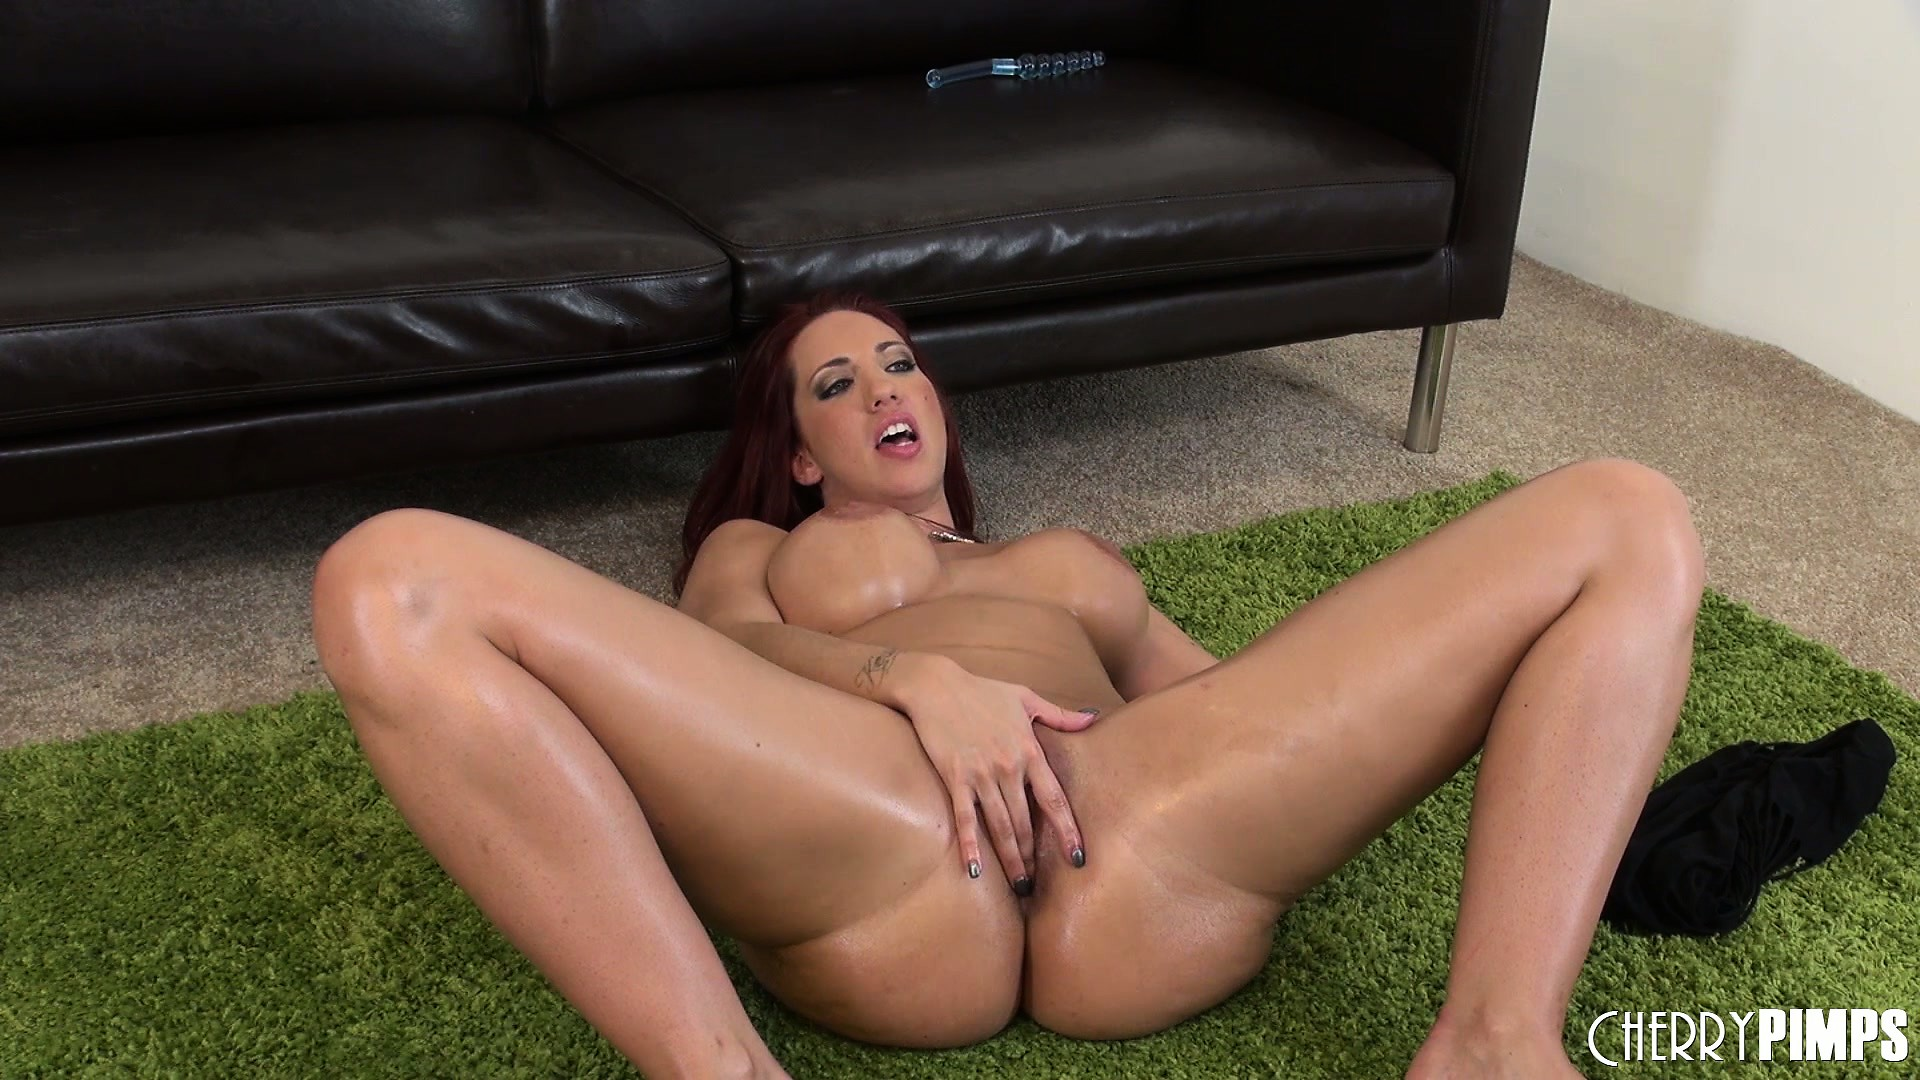 Porno Video of Kelly Spreads Her Hot Body Across The Floor And Gently Plays With Her Juicy Pussy